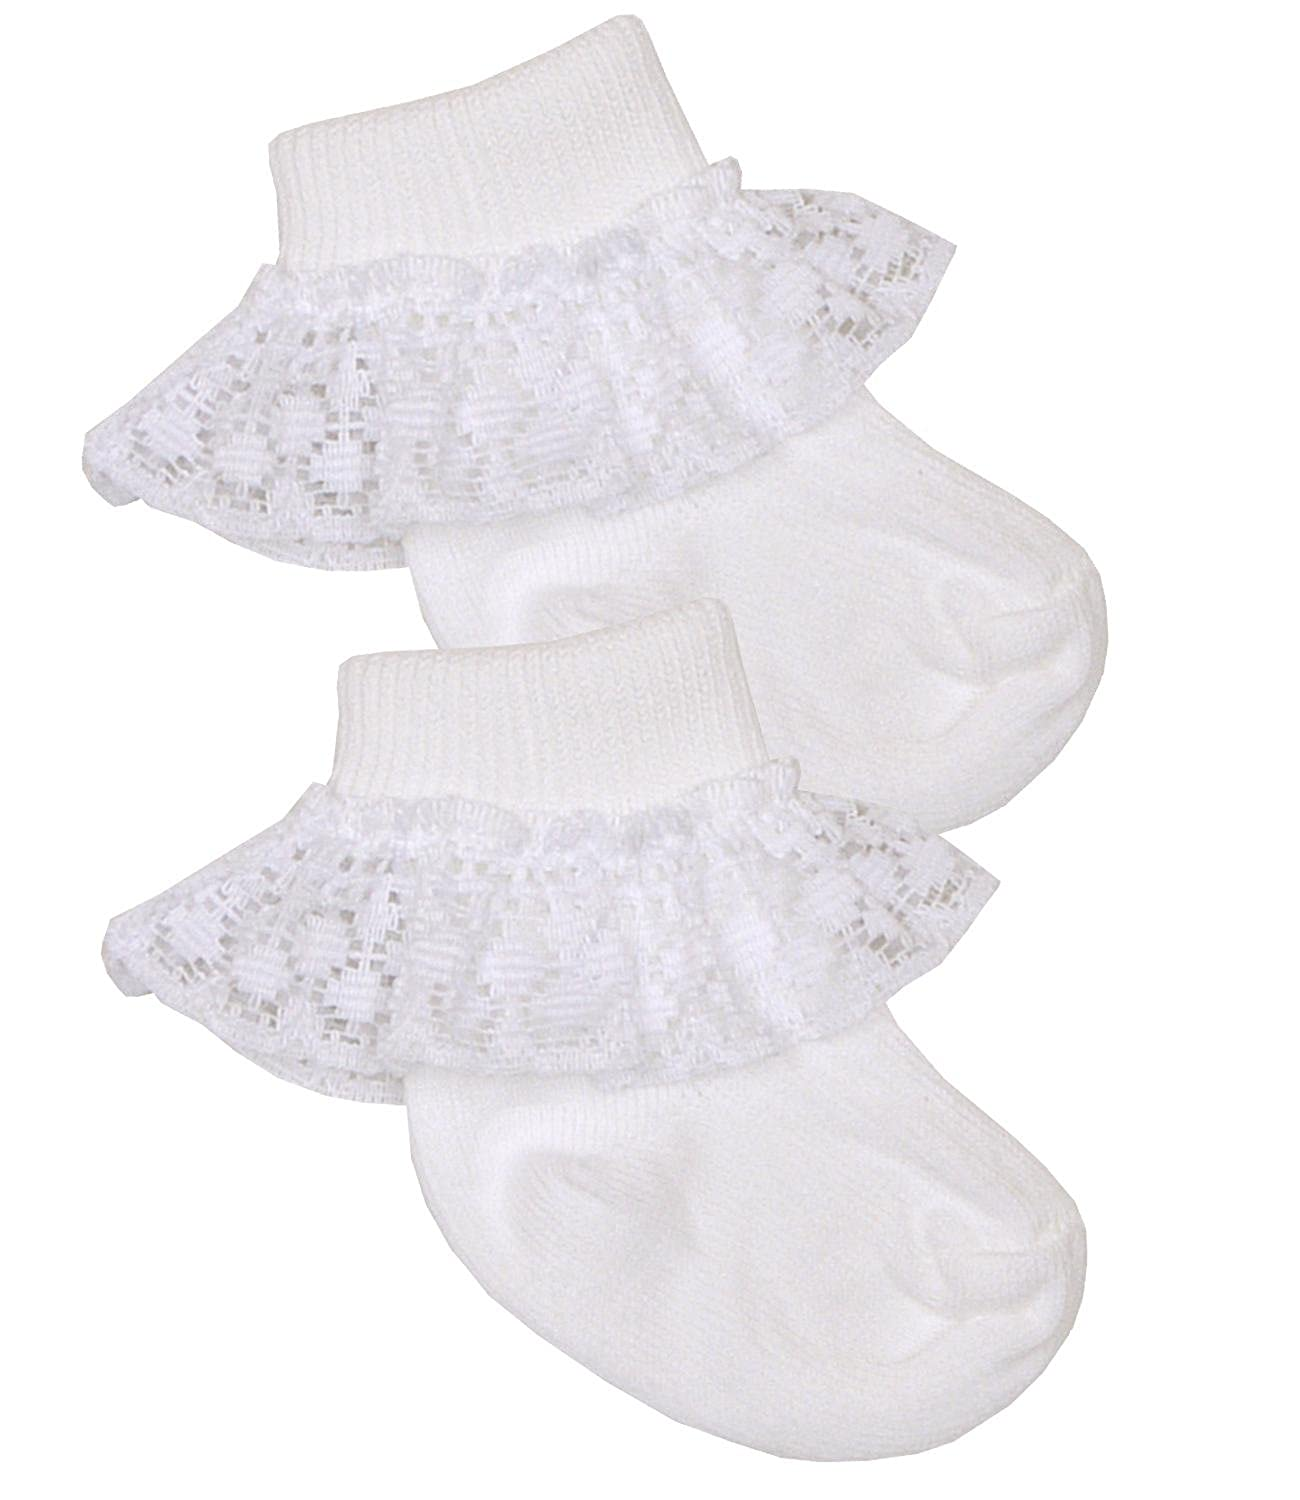 Amazon BabyPrem Premature Baby Frilly Lace Socks White Pink 3